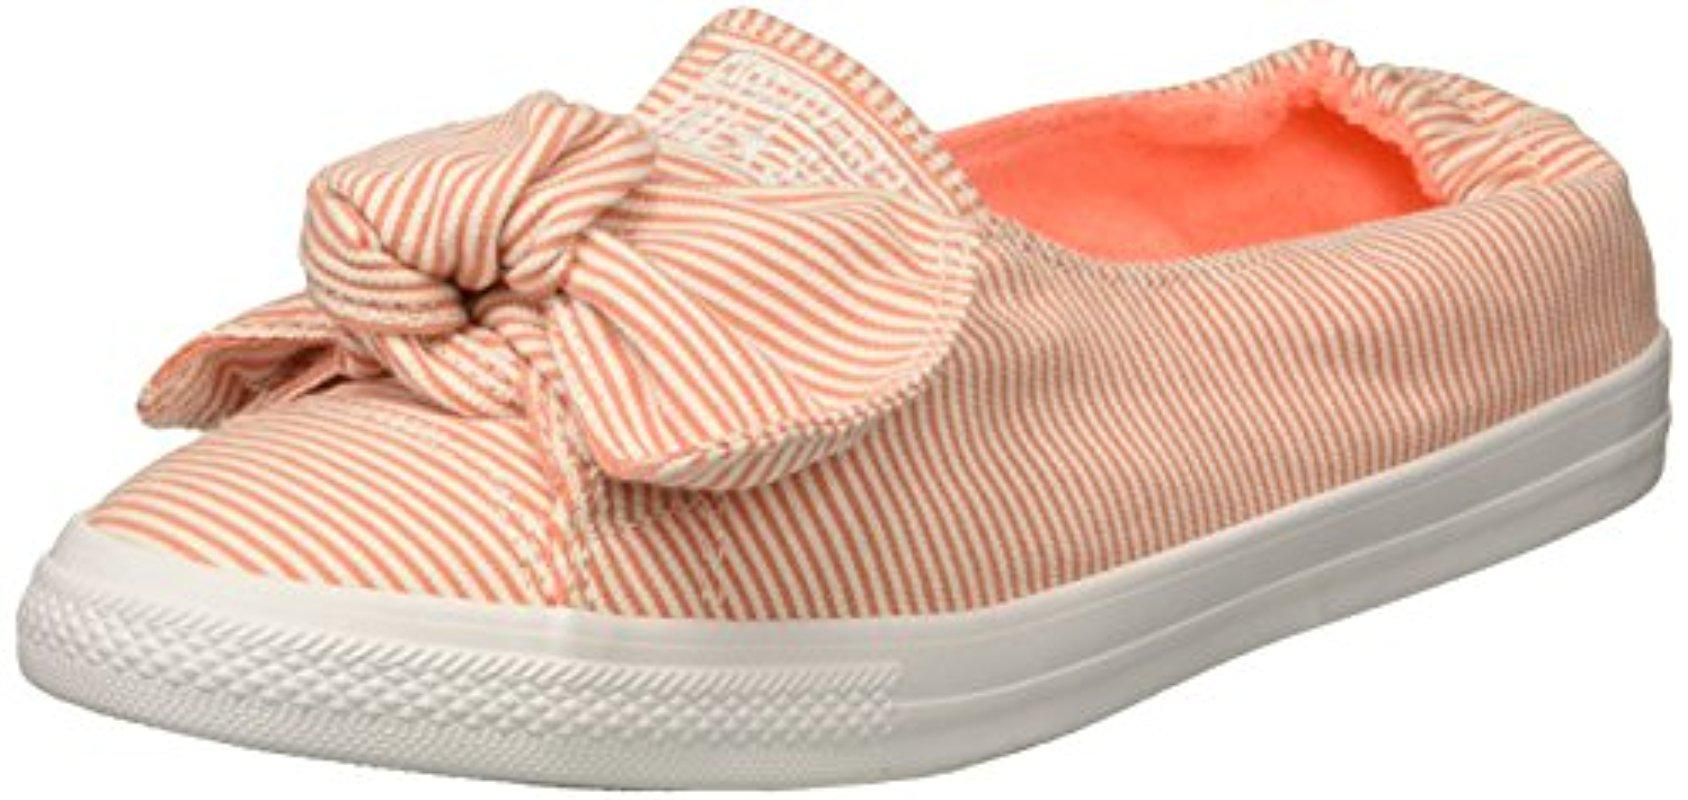 Chuck Taylor® All Star® Knot Striped Chambray Slip-On Sneakers HgX12